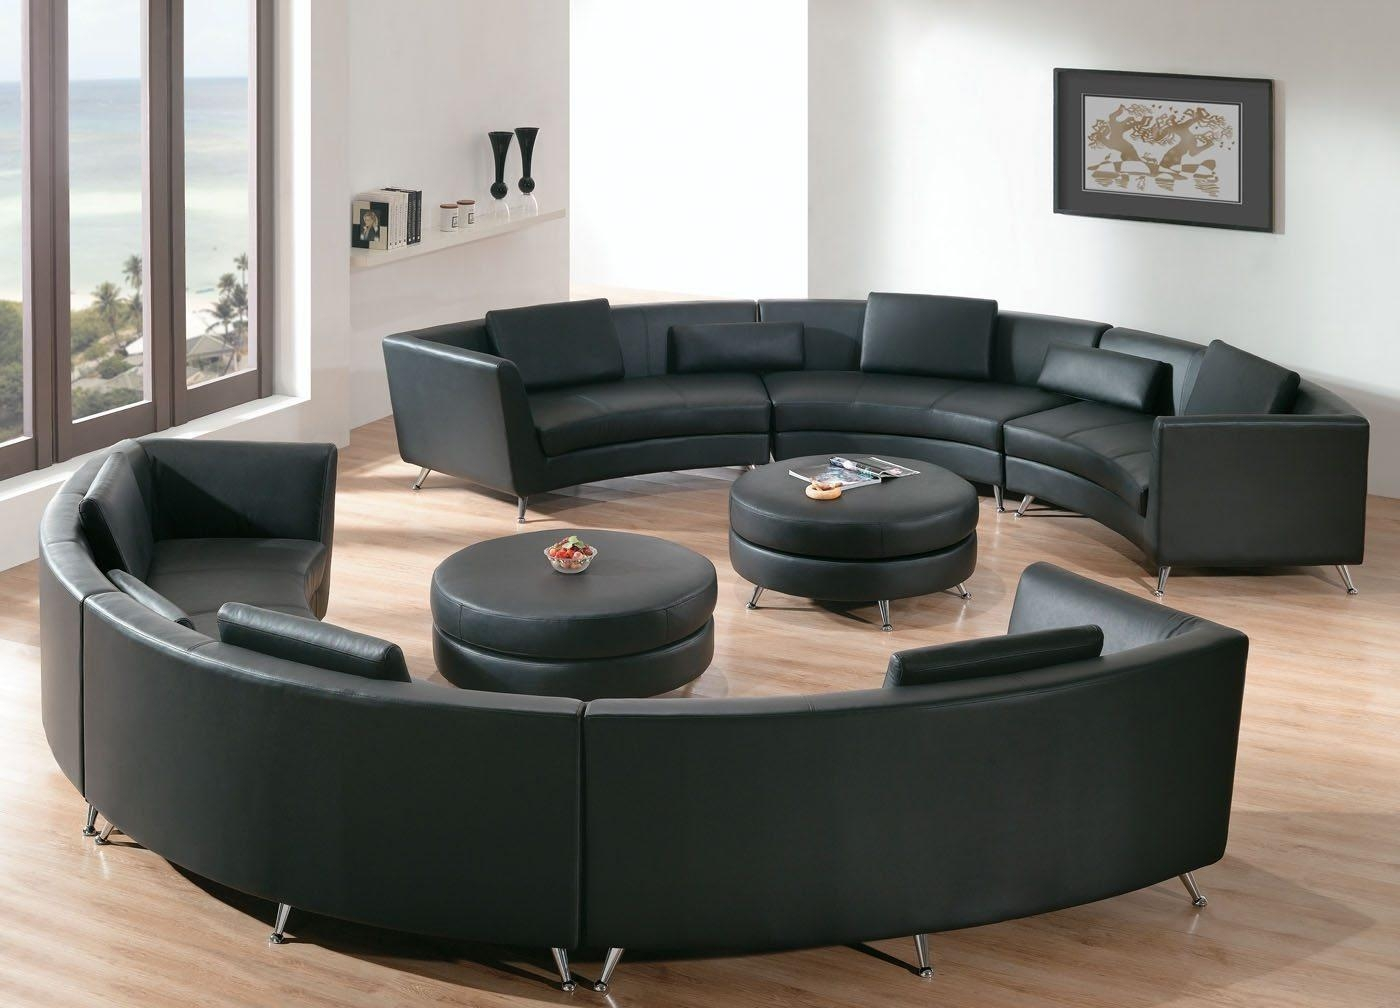 Semi Circular Sectional Sofa Has One Of The Best Kind Of Other Is For Semi Circular Sectional Sofas (View 17 of 20)